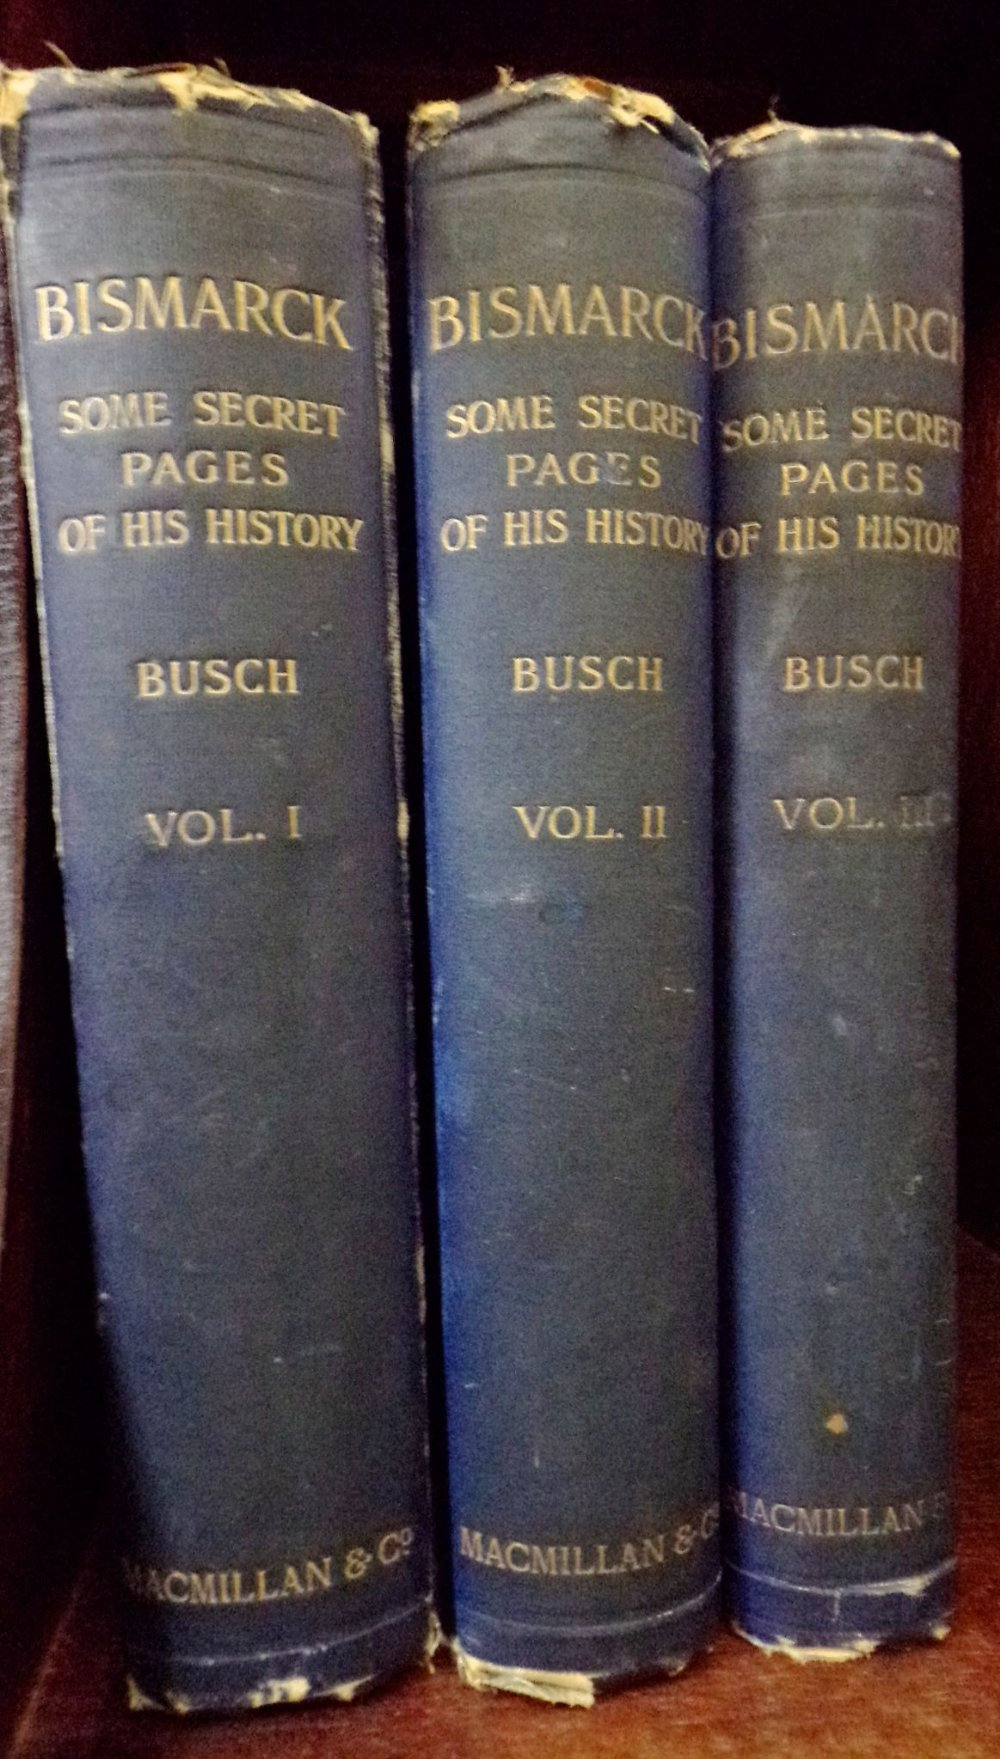 Lot 892 - Bismark - Some Secret Pages of His History, in three volumes by Dr Moritz Busch published